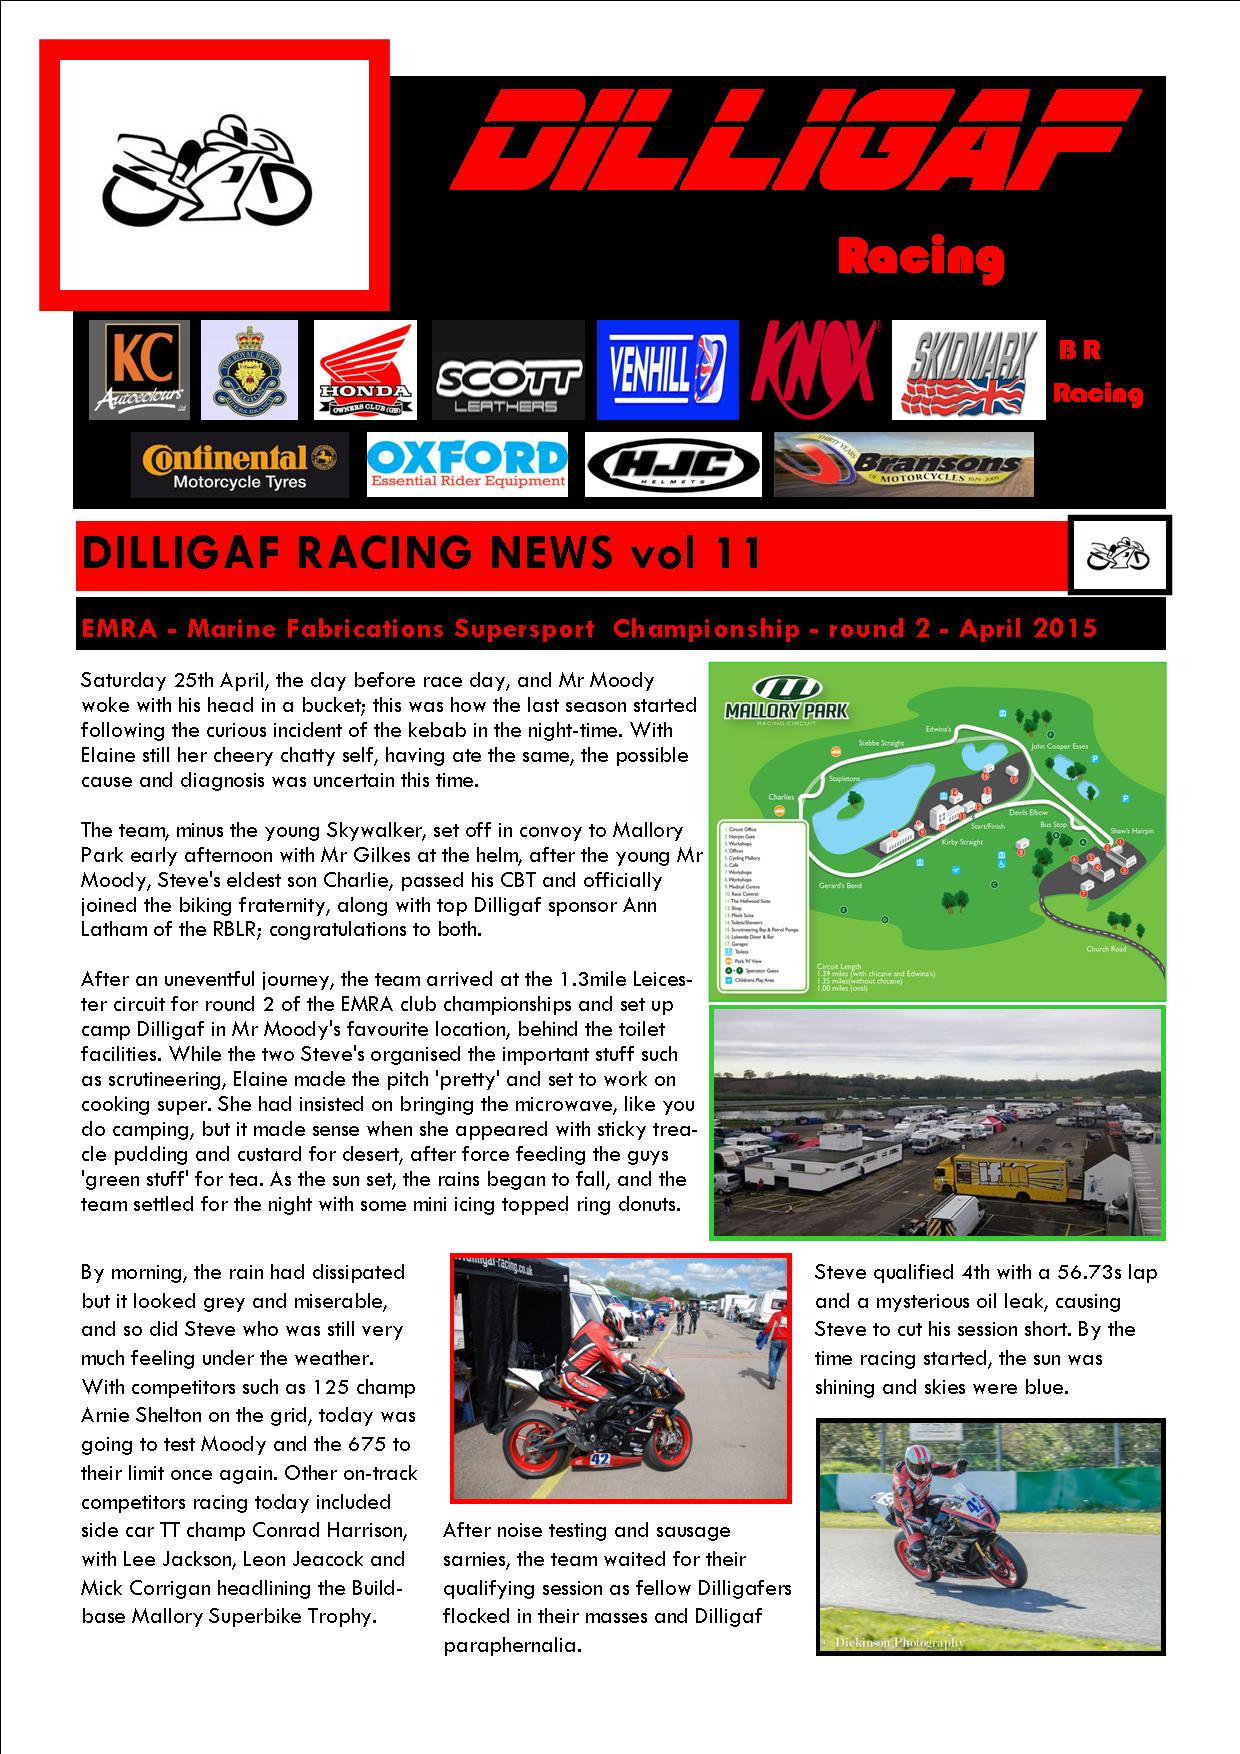 dilligaf racing news vol 11